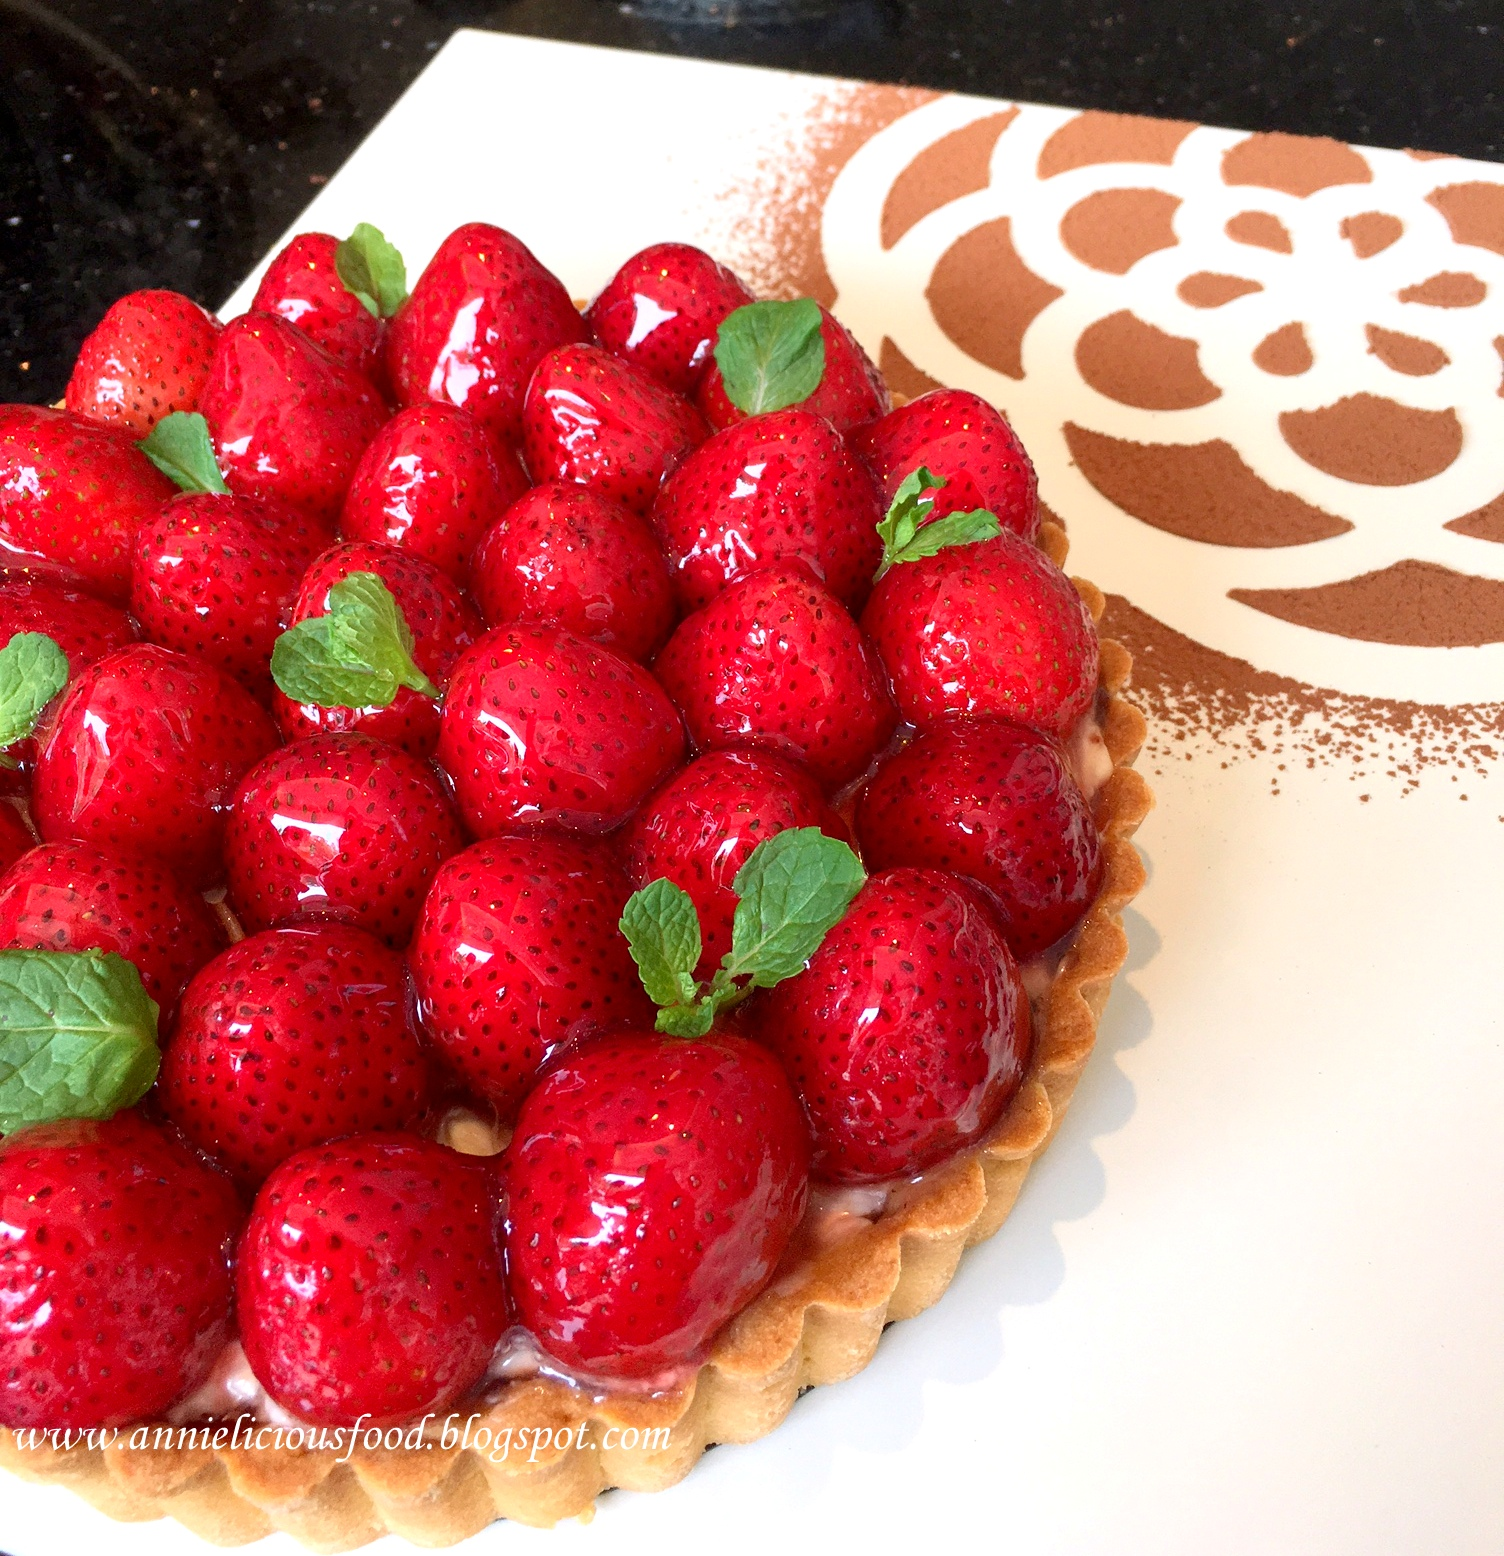 Annielicious Food: Strawberry Peppermint Tart